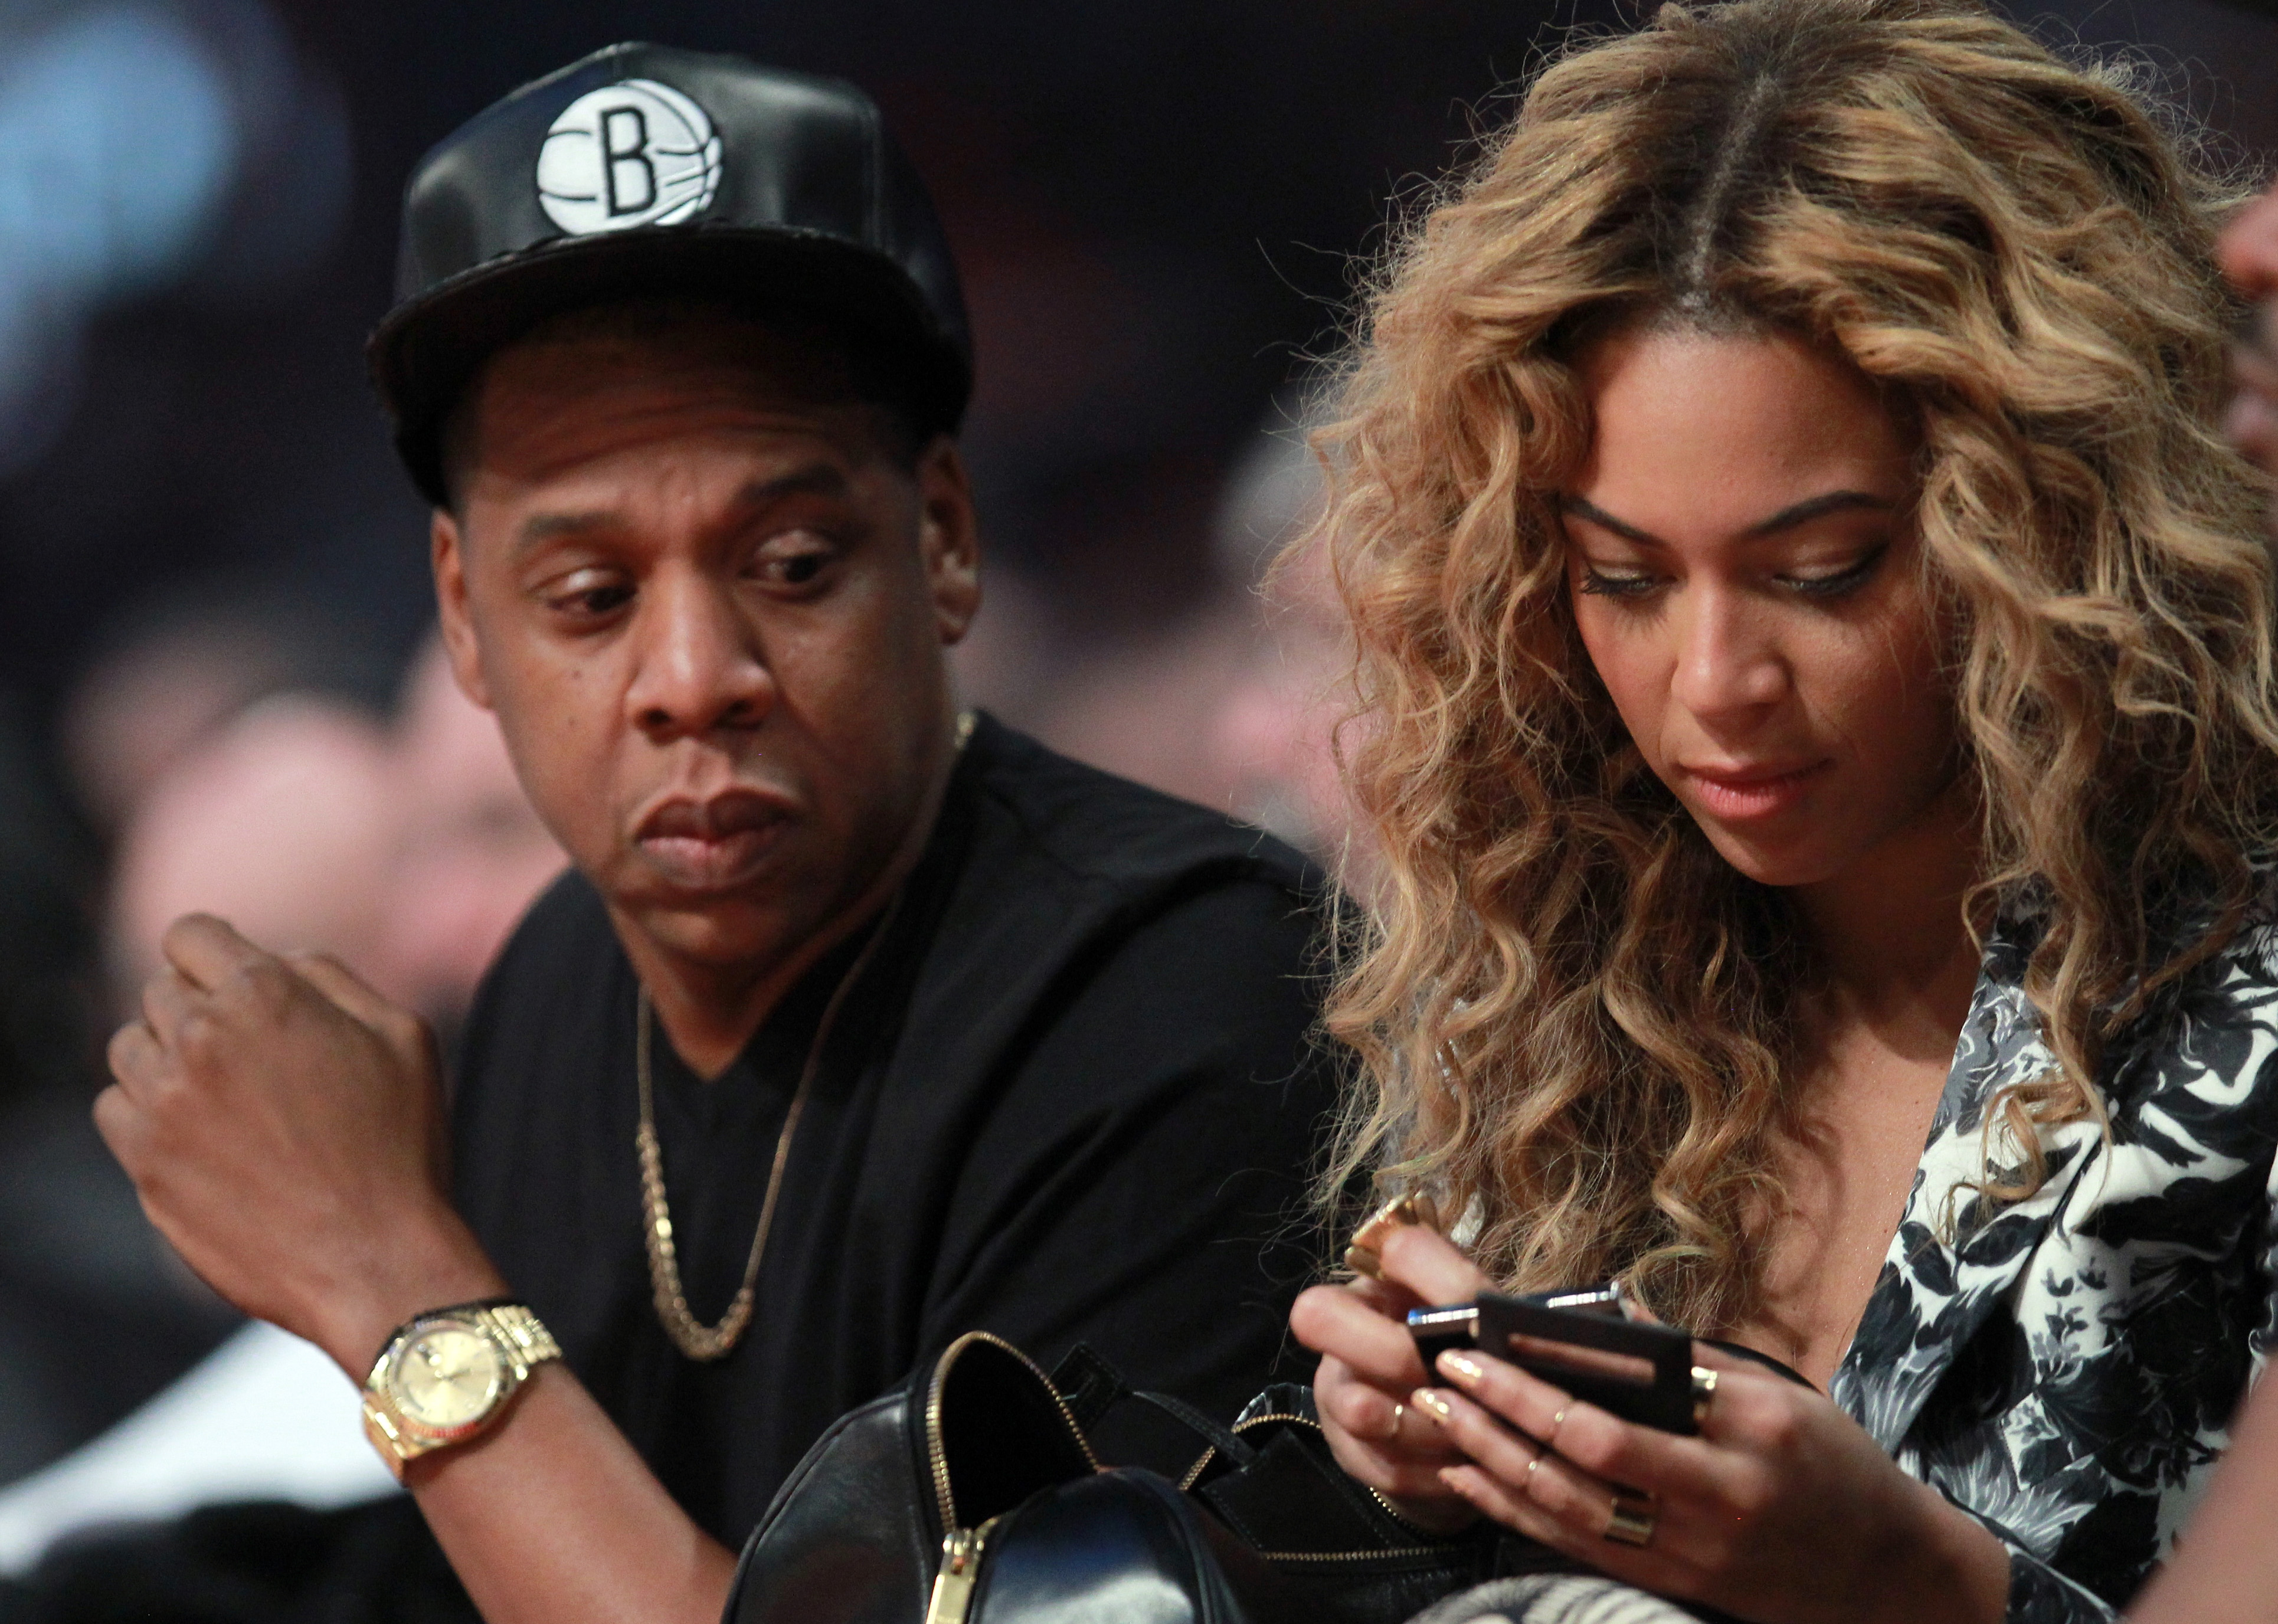 Is jay z still married to beyonce